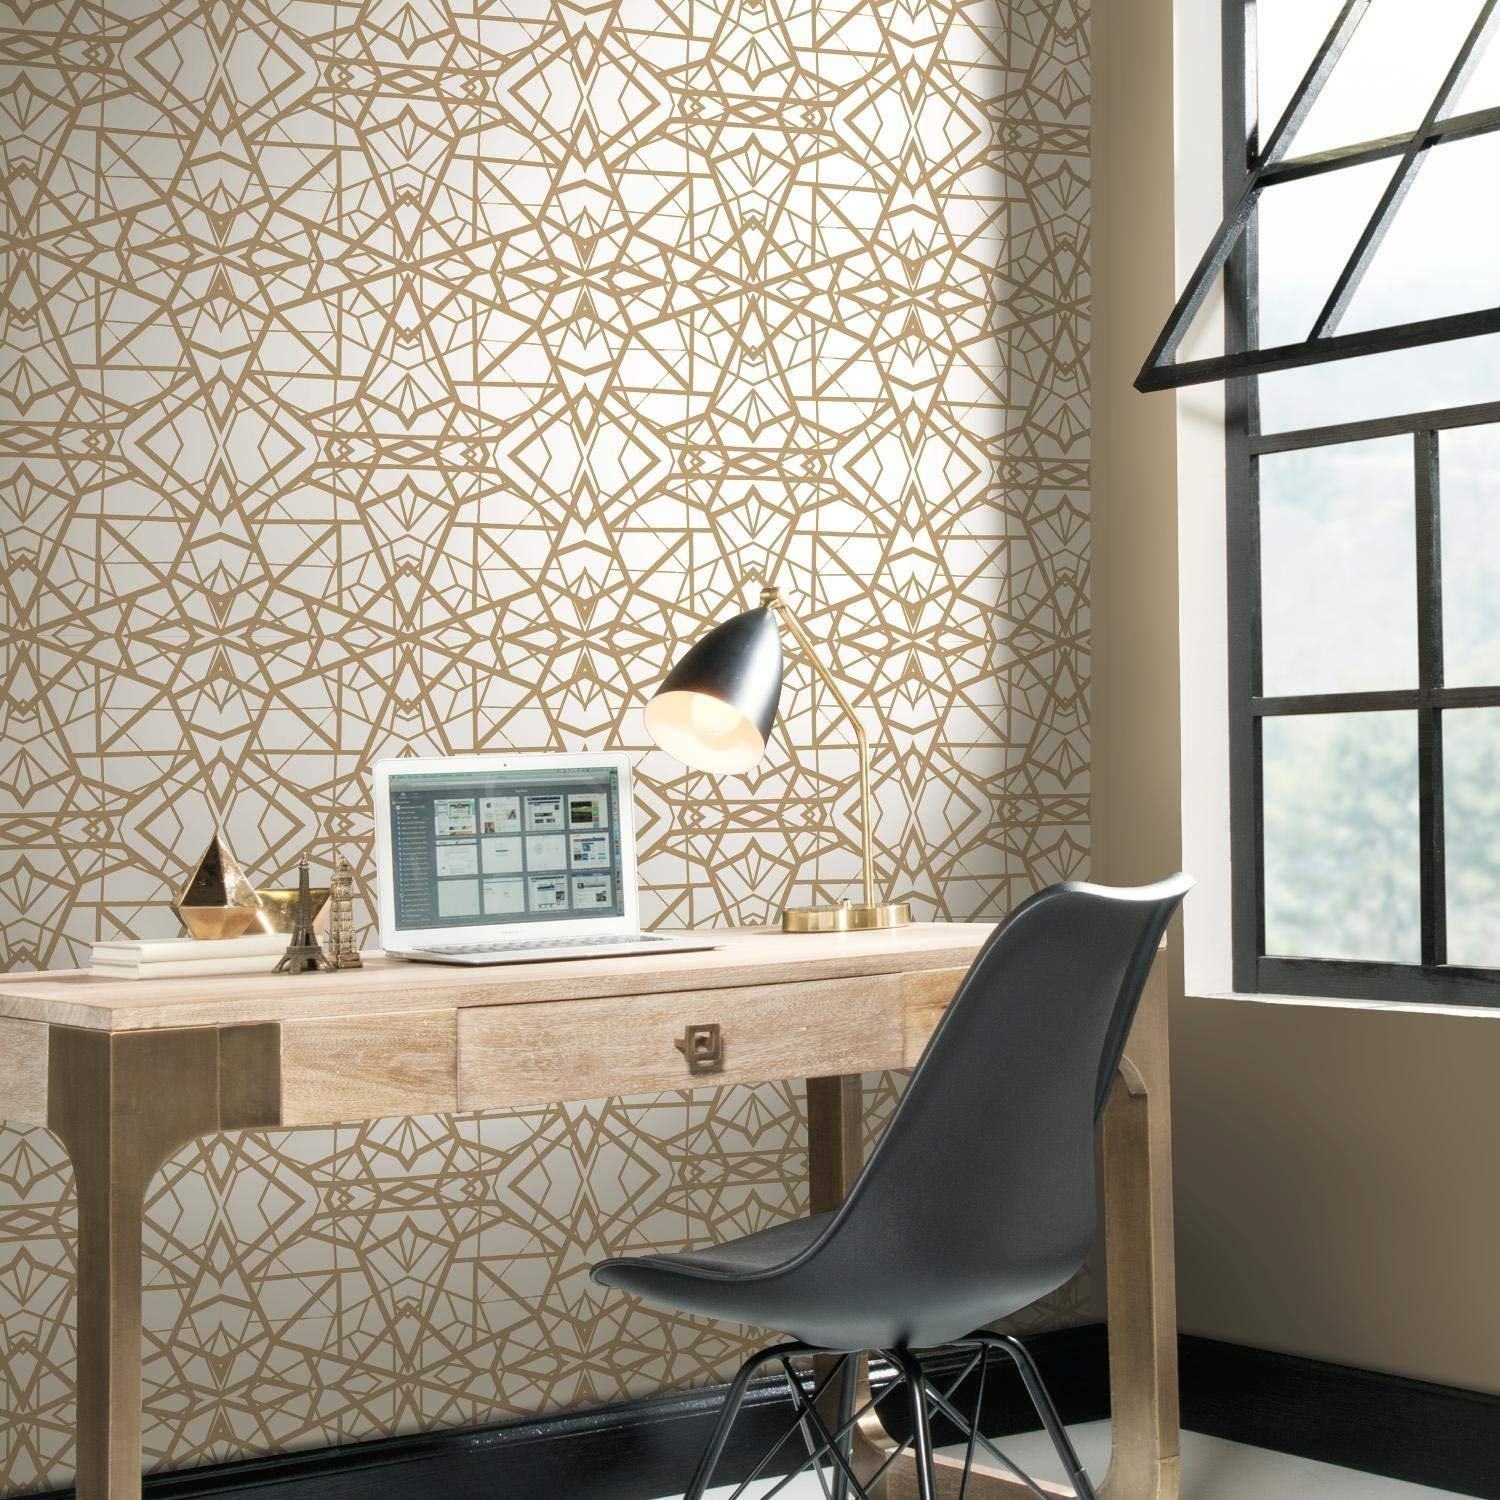 Shatter Geometric Peel Stick Wallpaper In White And Gold By Roommate Burke Decor